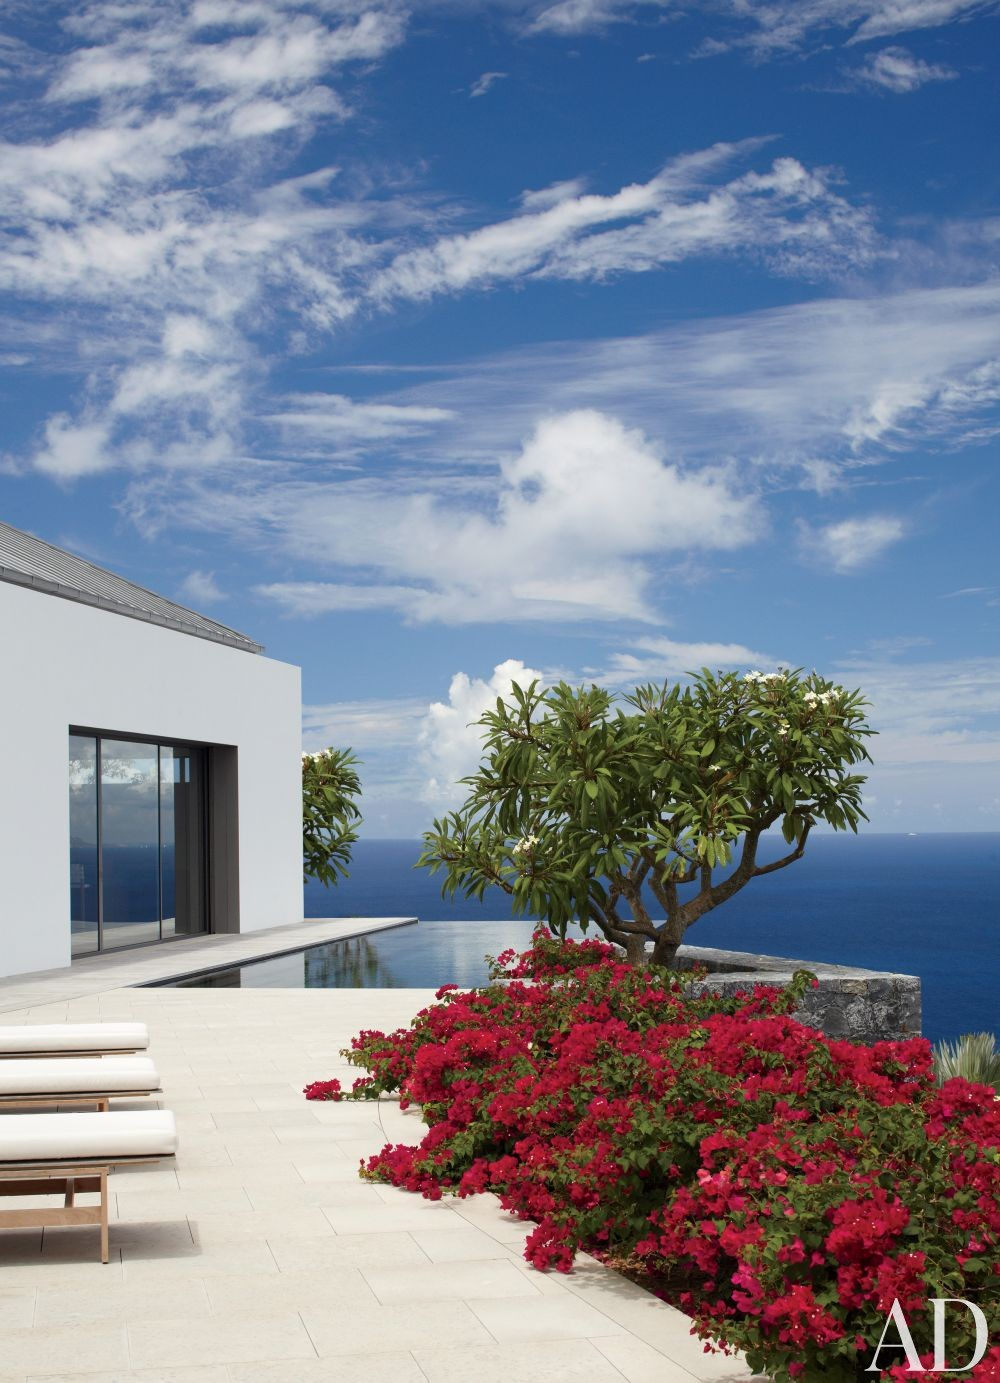 Modern Outdoor Space and Gwathmey Siegel & Associates Architects in St. Barts